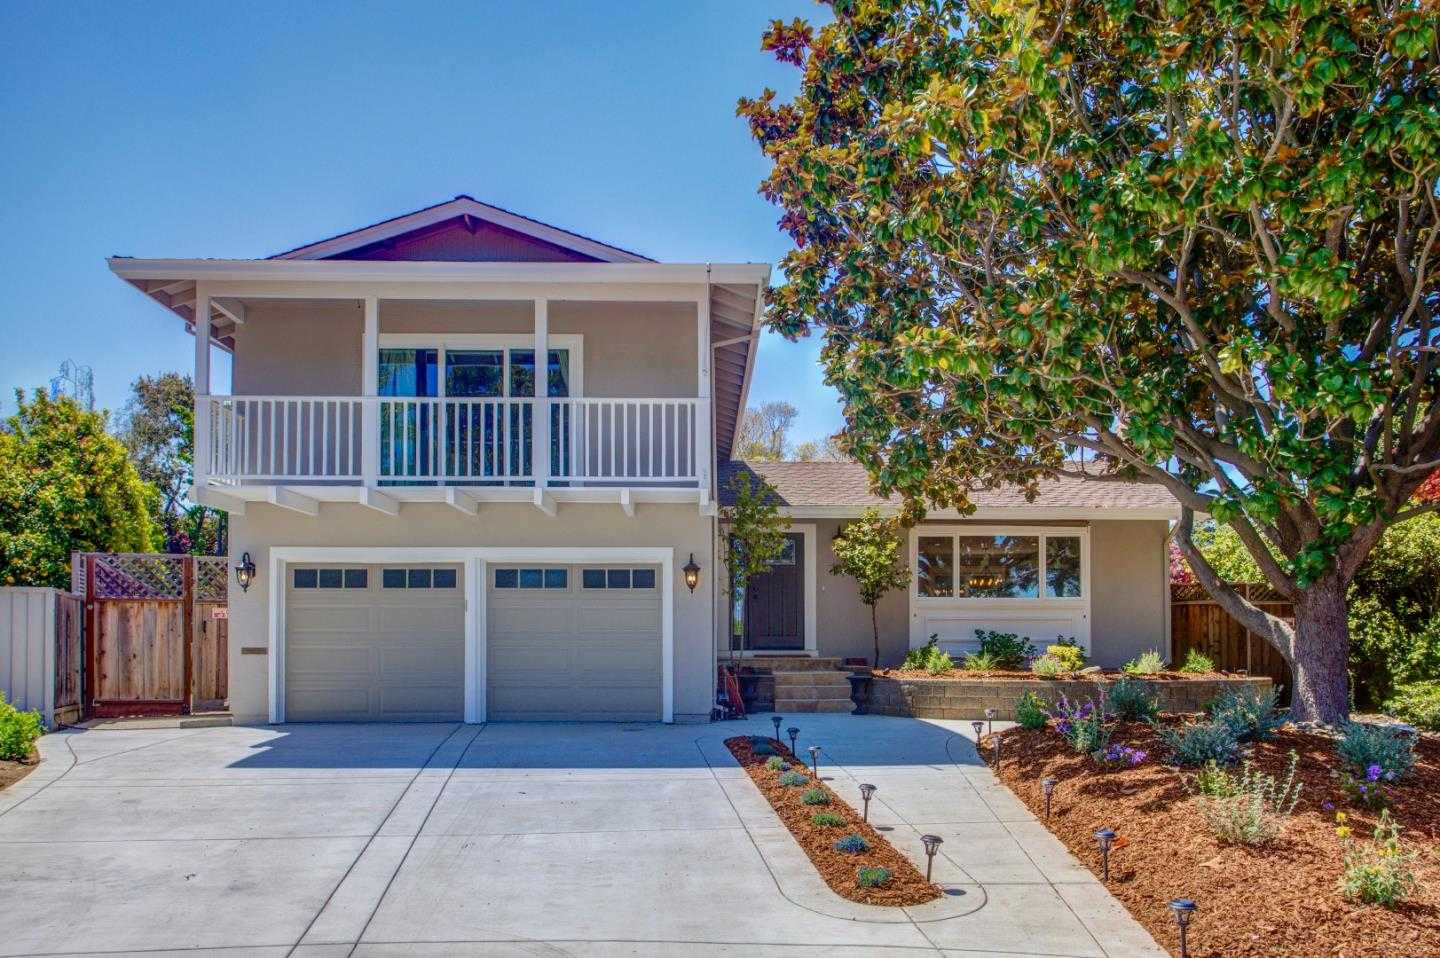 $2,098,000 - 5Br/3Ba -  for Sale in Sunnyvale